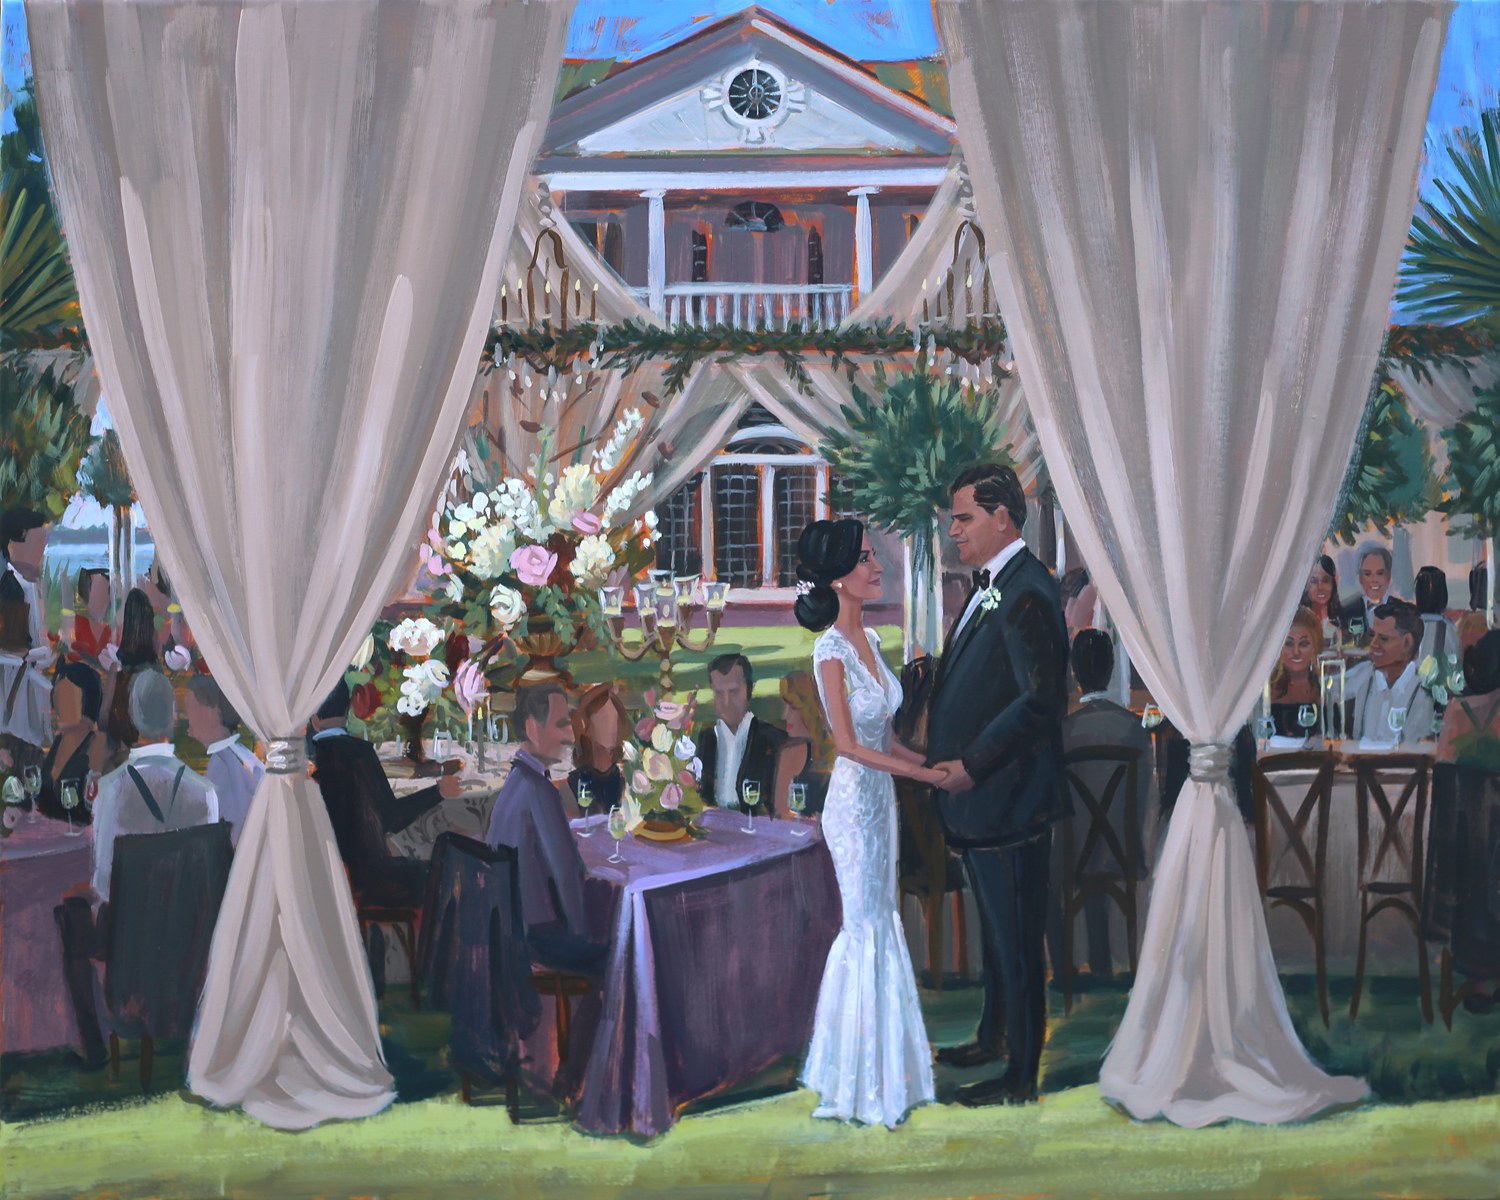 Christina + Gabe celebrated their wedding at the iconic Lowndes Grove Plantation in downtown Charleston, SC. Live Wedding Painter, Ben Keys, captured a sweet moment on canvas of the newlyweds standing outside of their gorgeous al fresco tent there on the lawn.